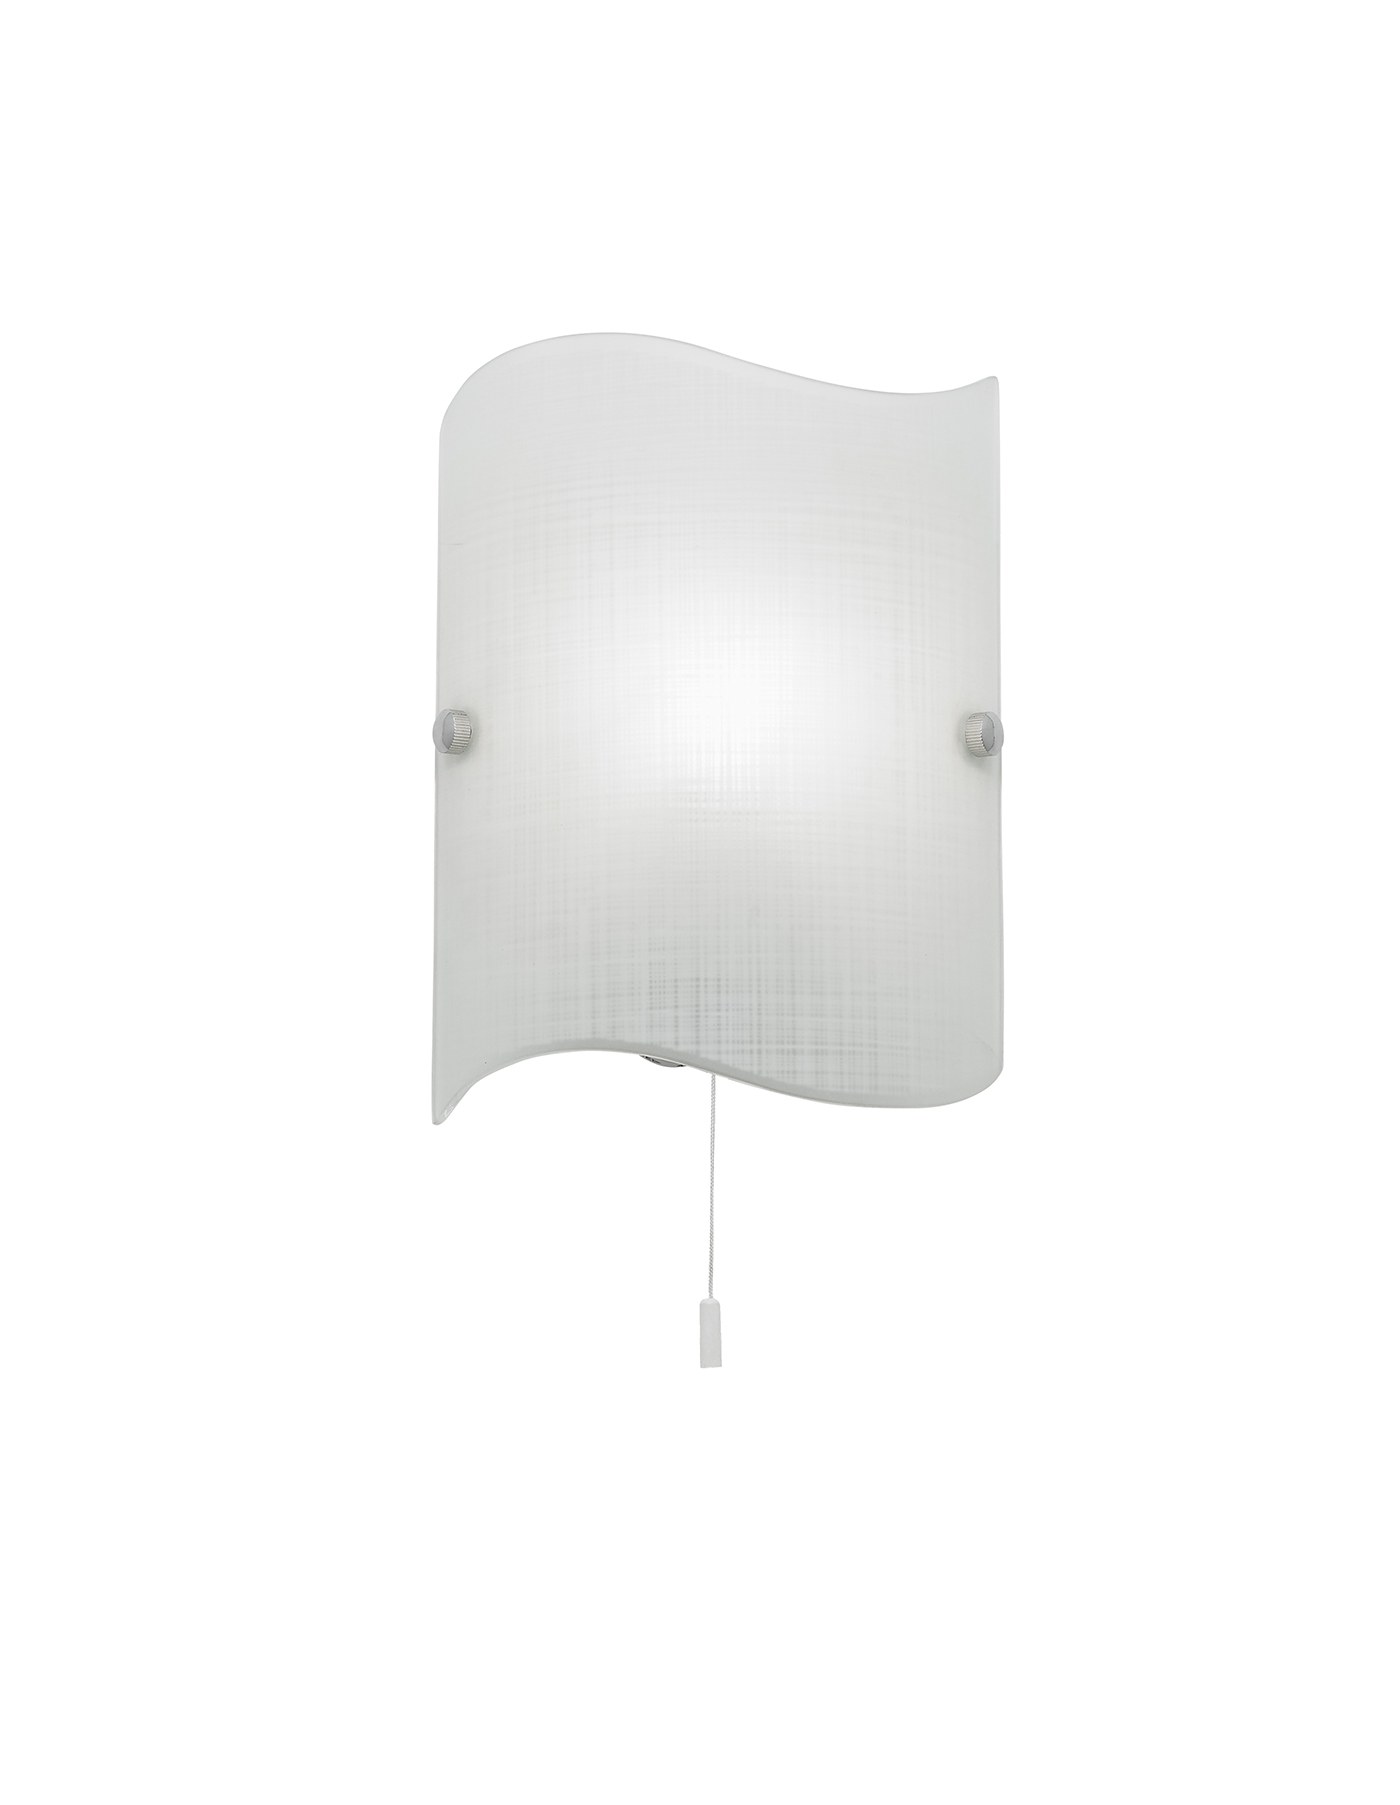 Endon Wave 1lt wall light 60W Matt patterned white glass & chrome effect plate